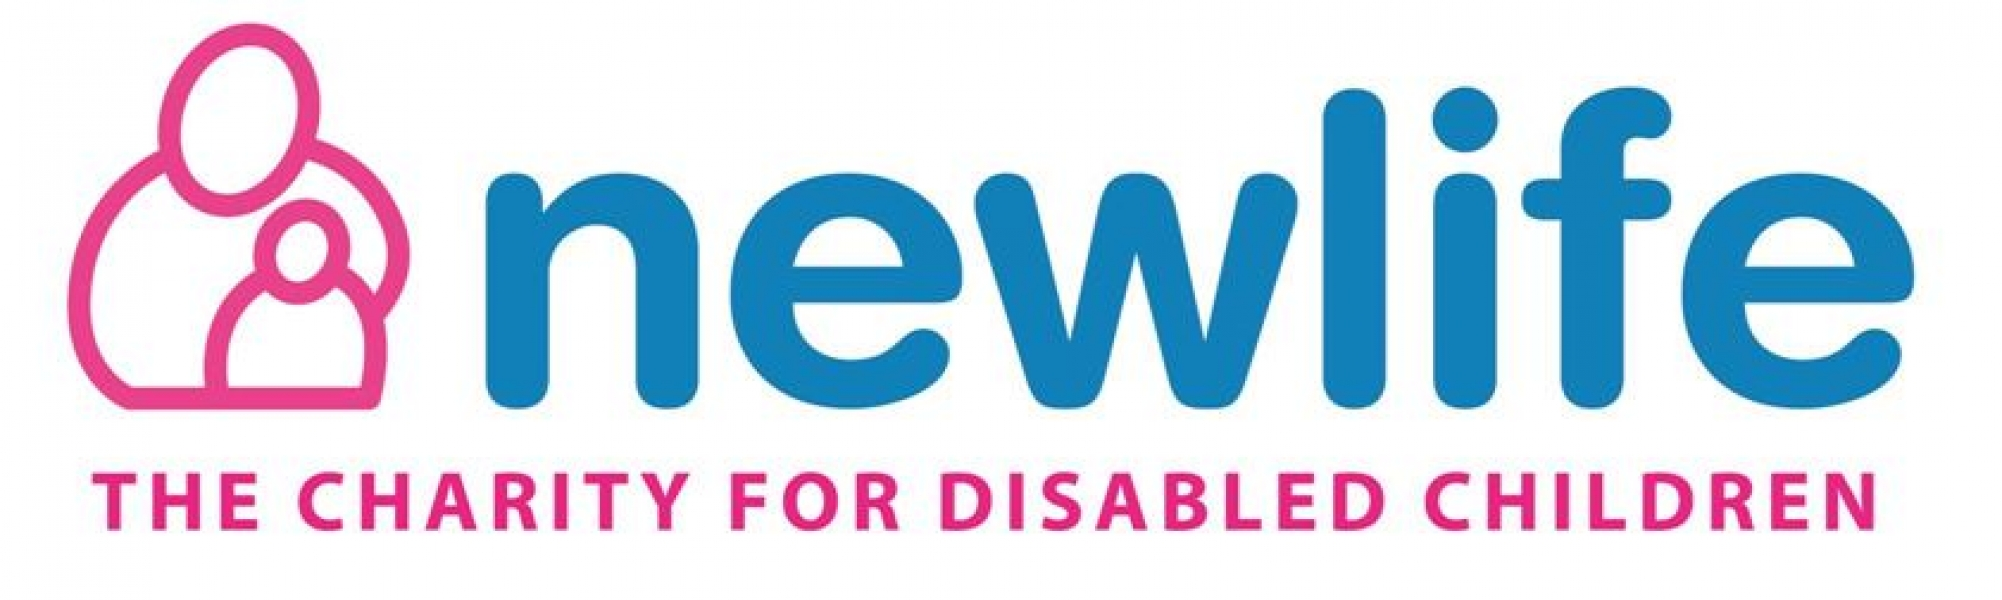 Newlife The Charity For Disabled Children eCards